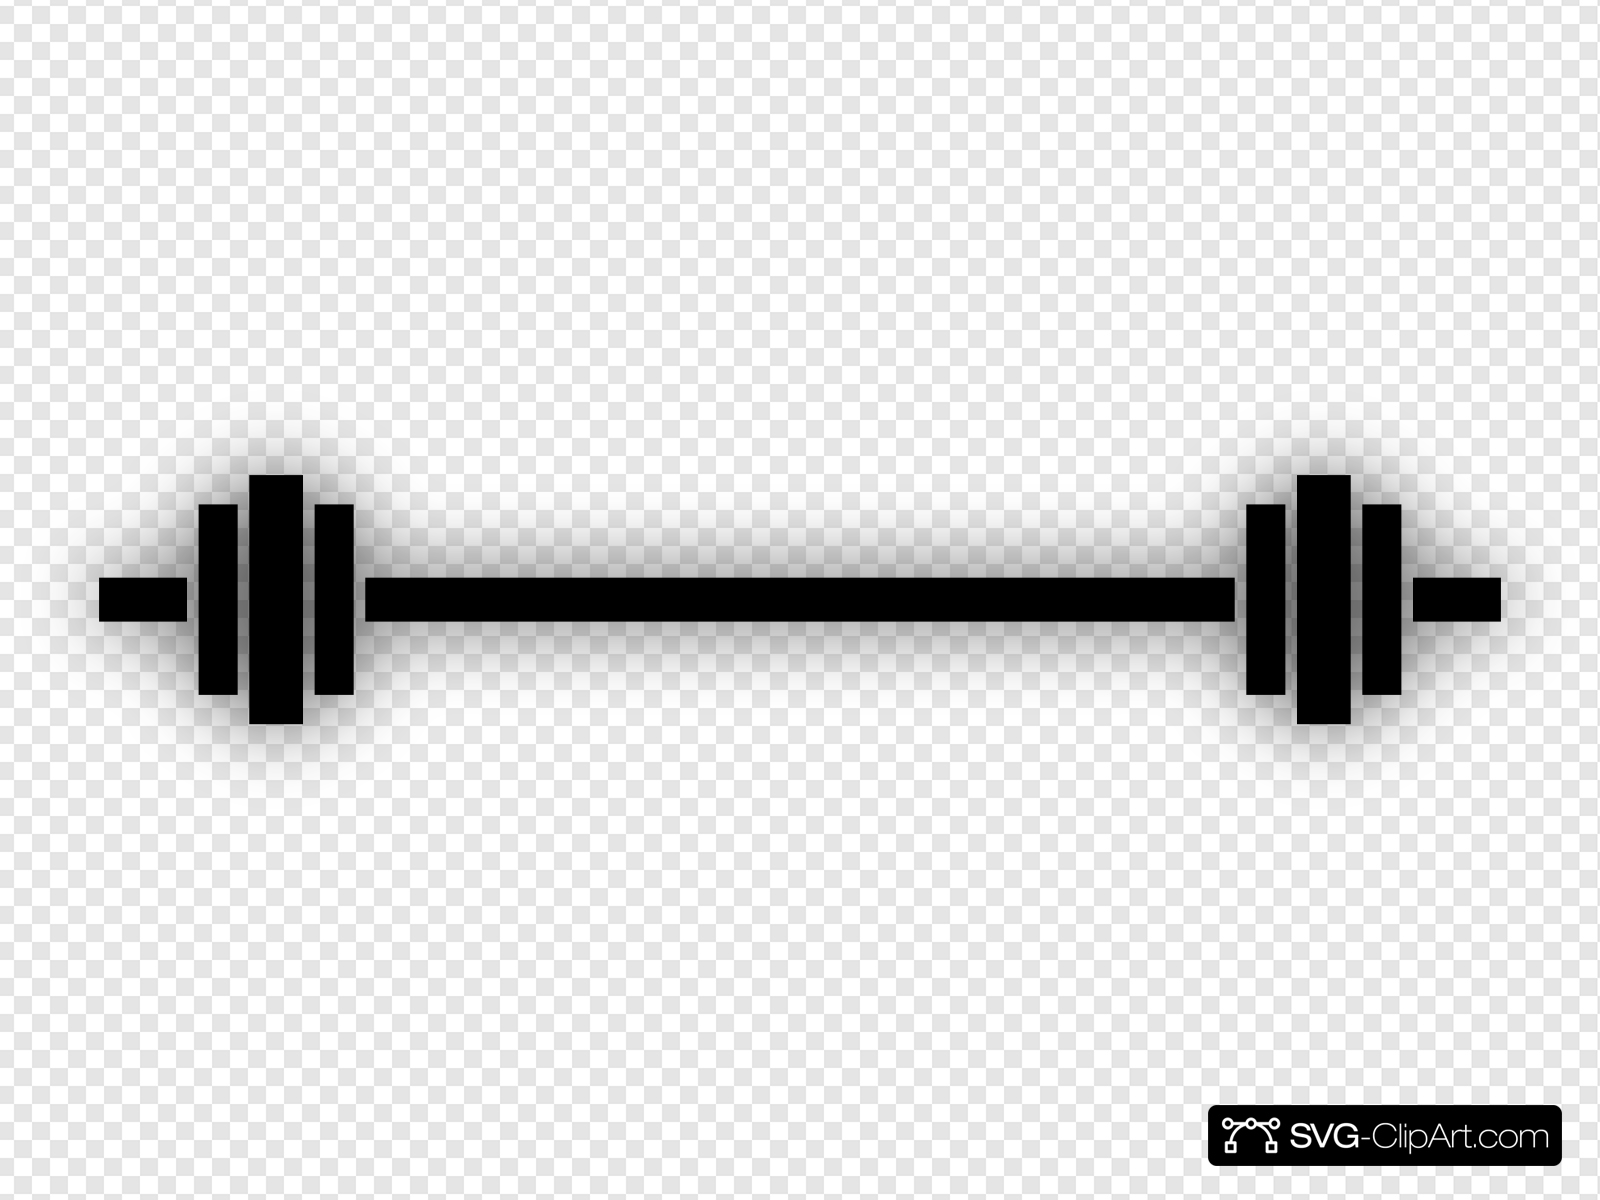 Barbell clipart svg. Clip art icon and